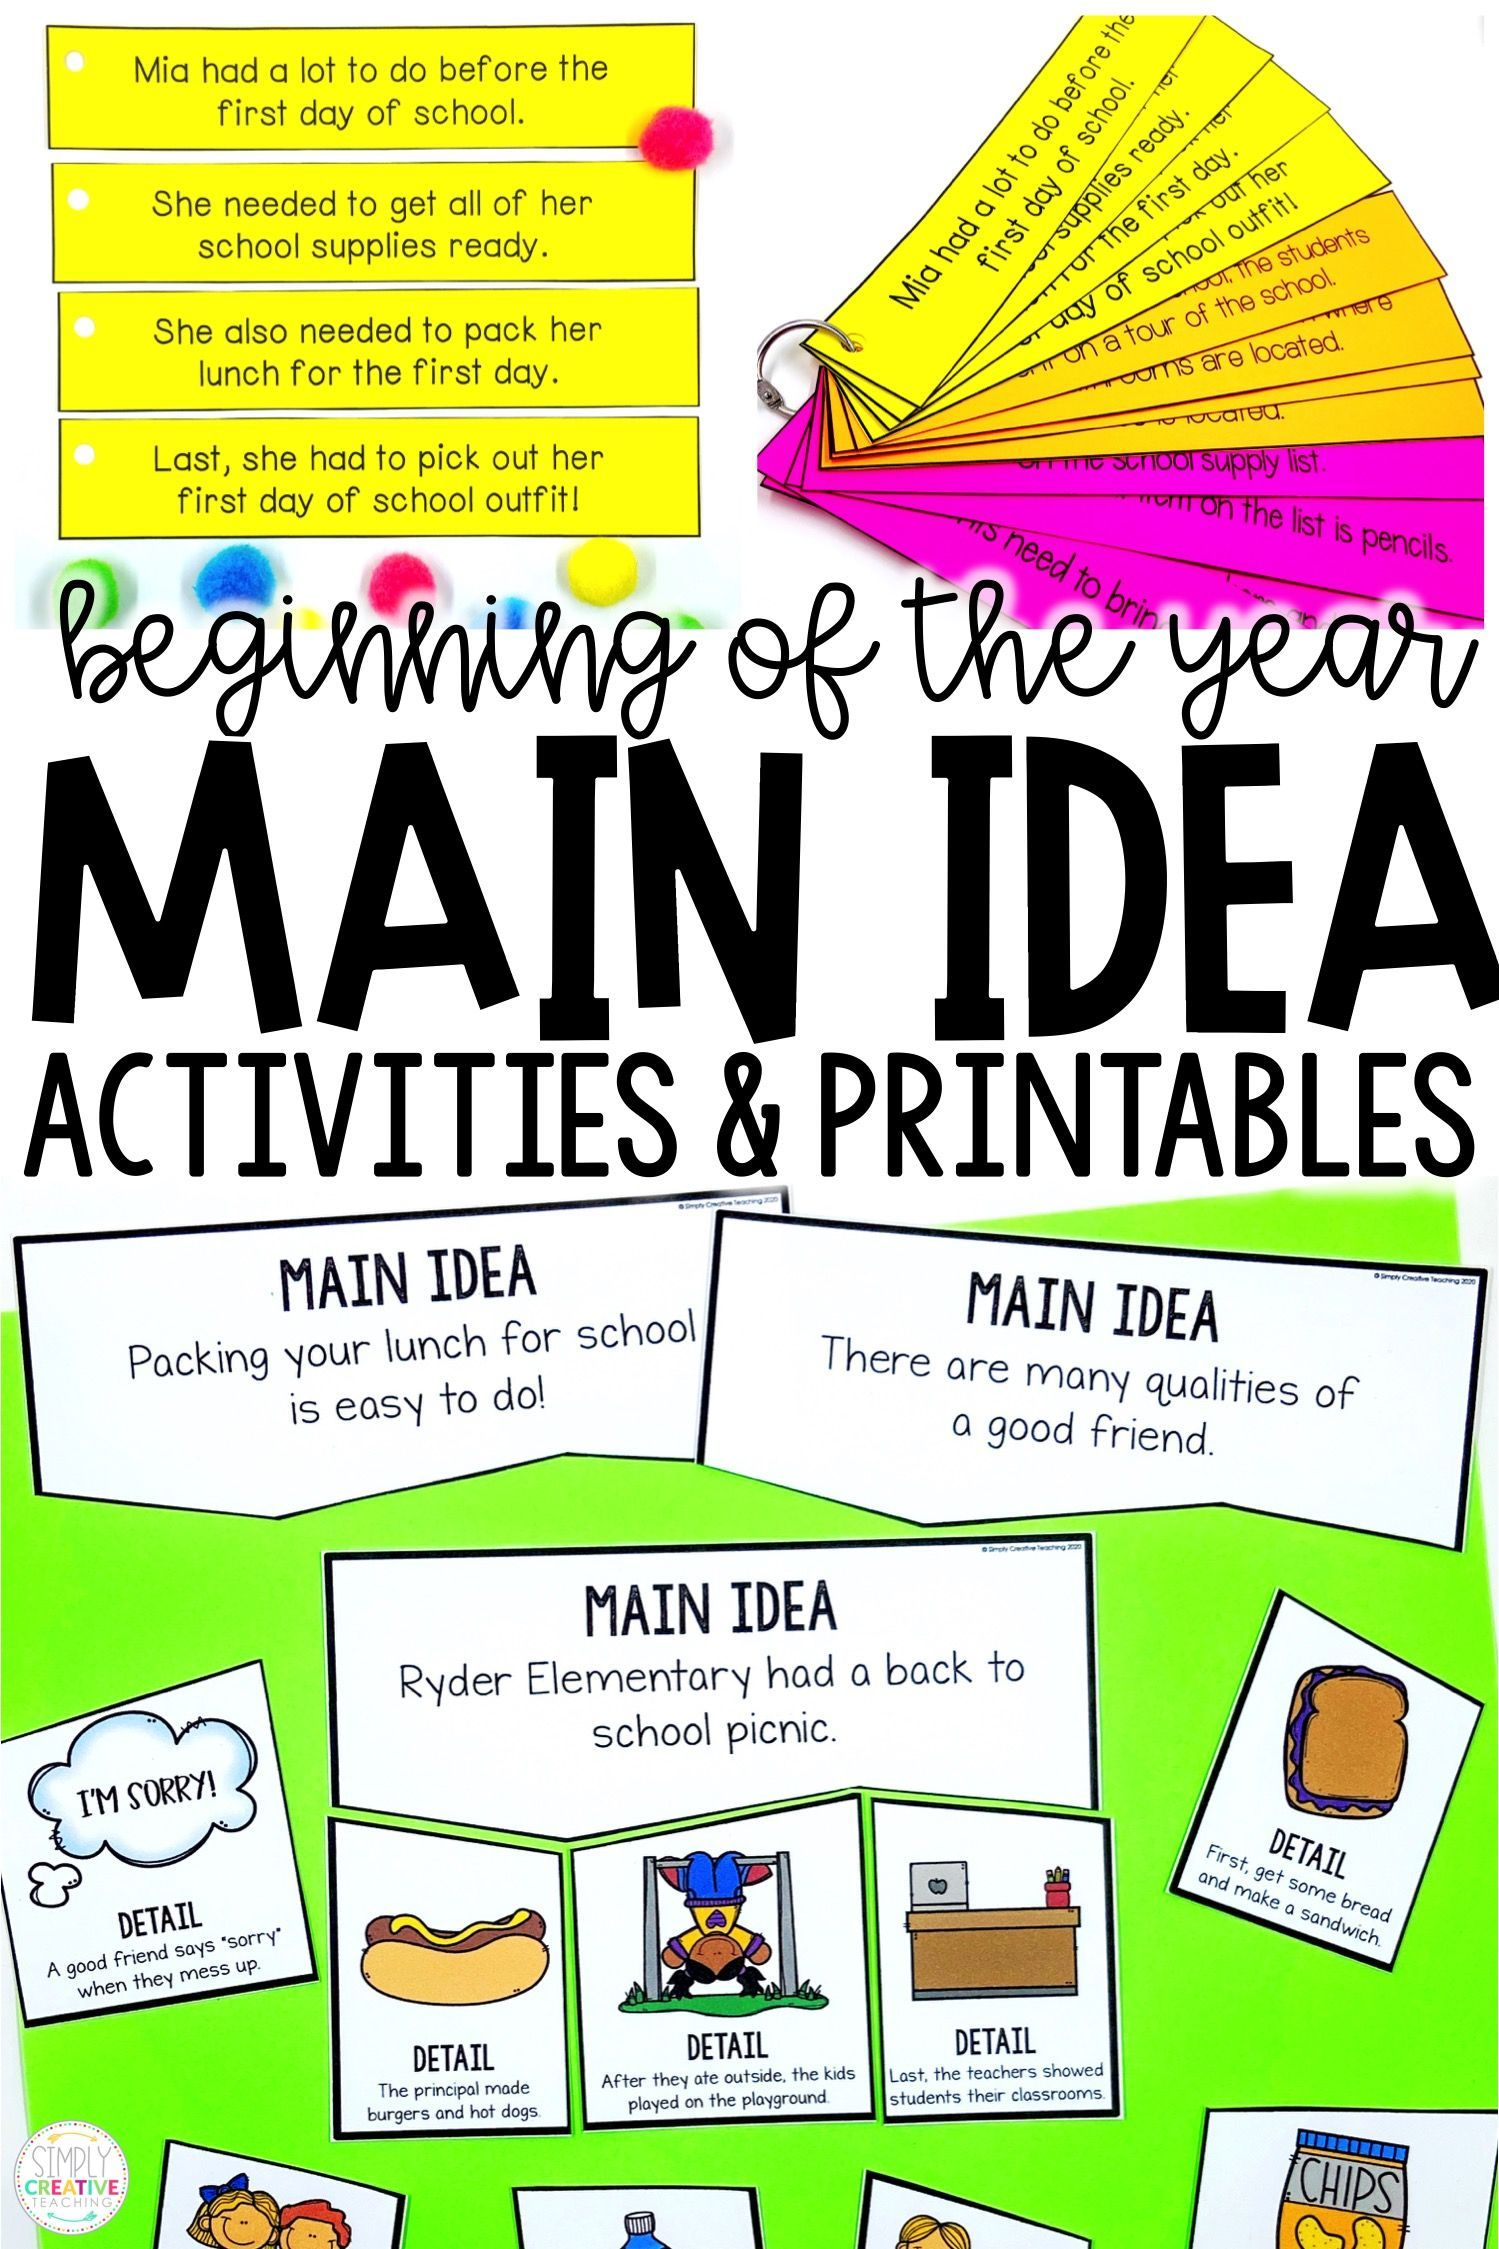 Main Idea Amp Details Activities For Back To School